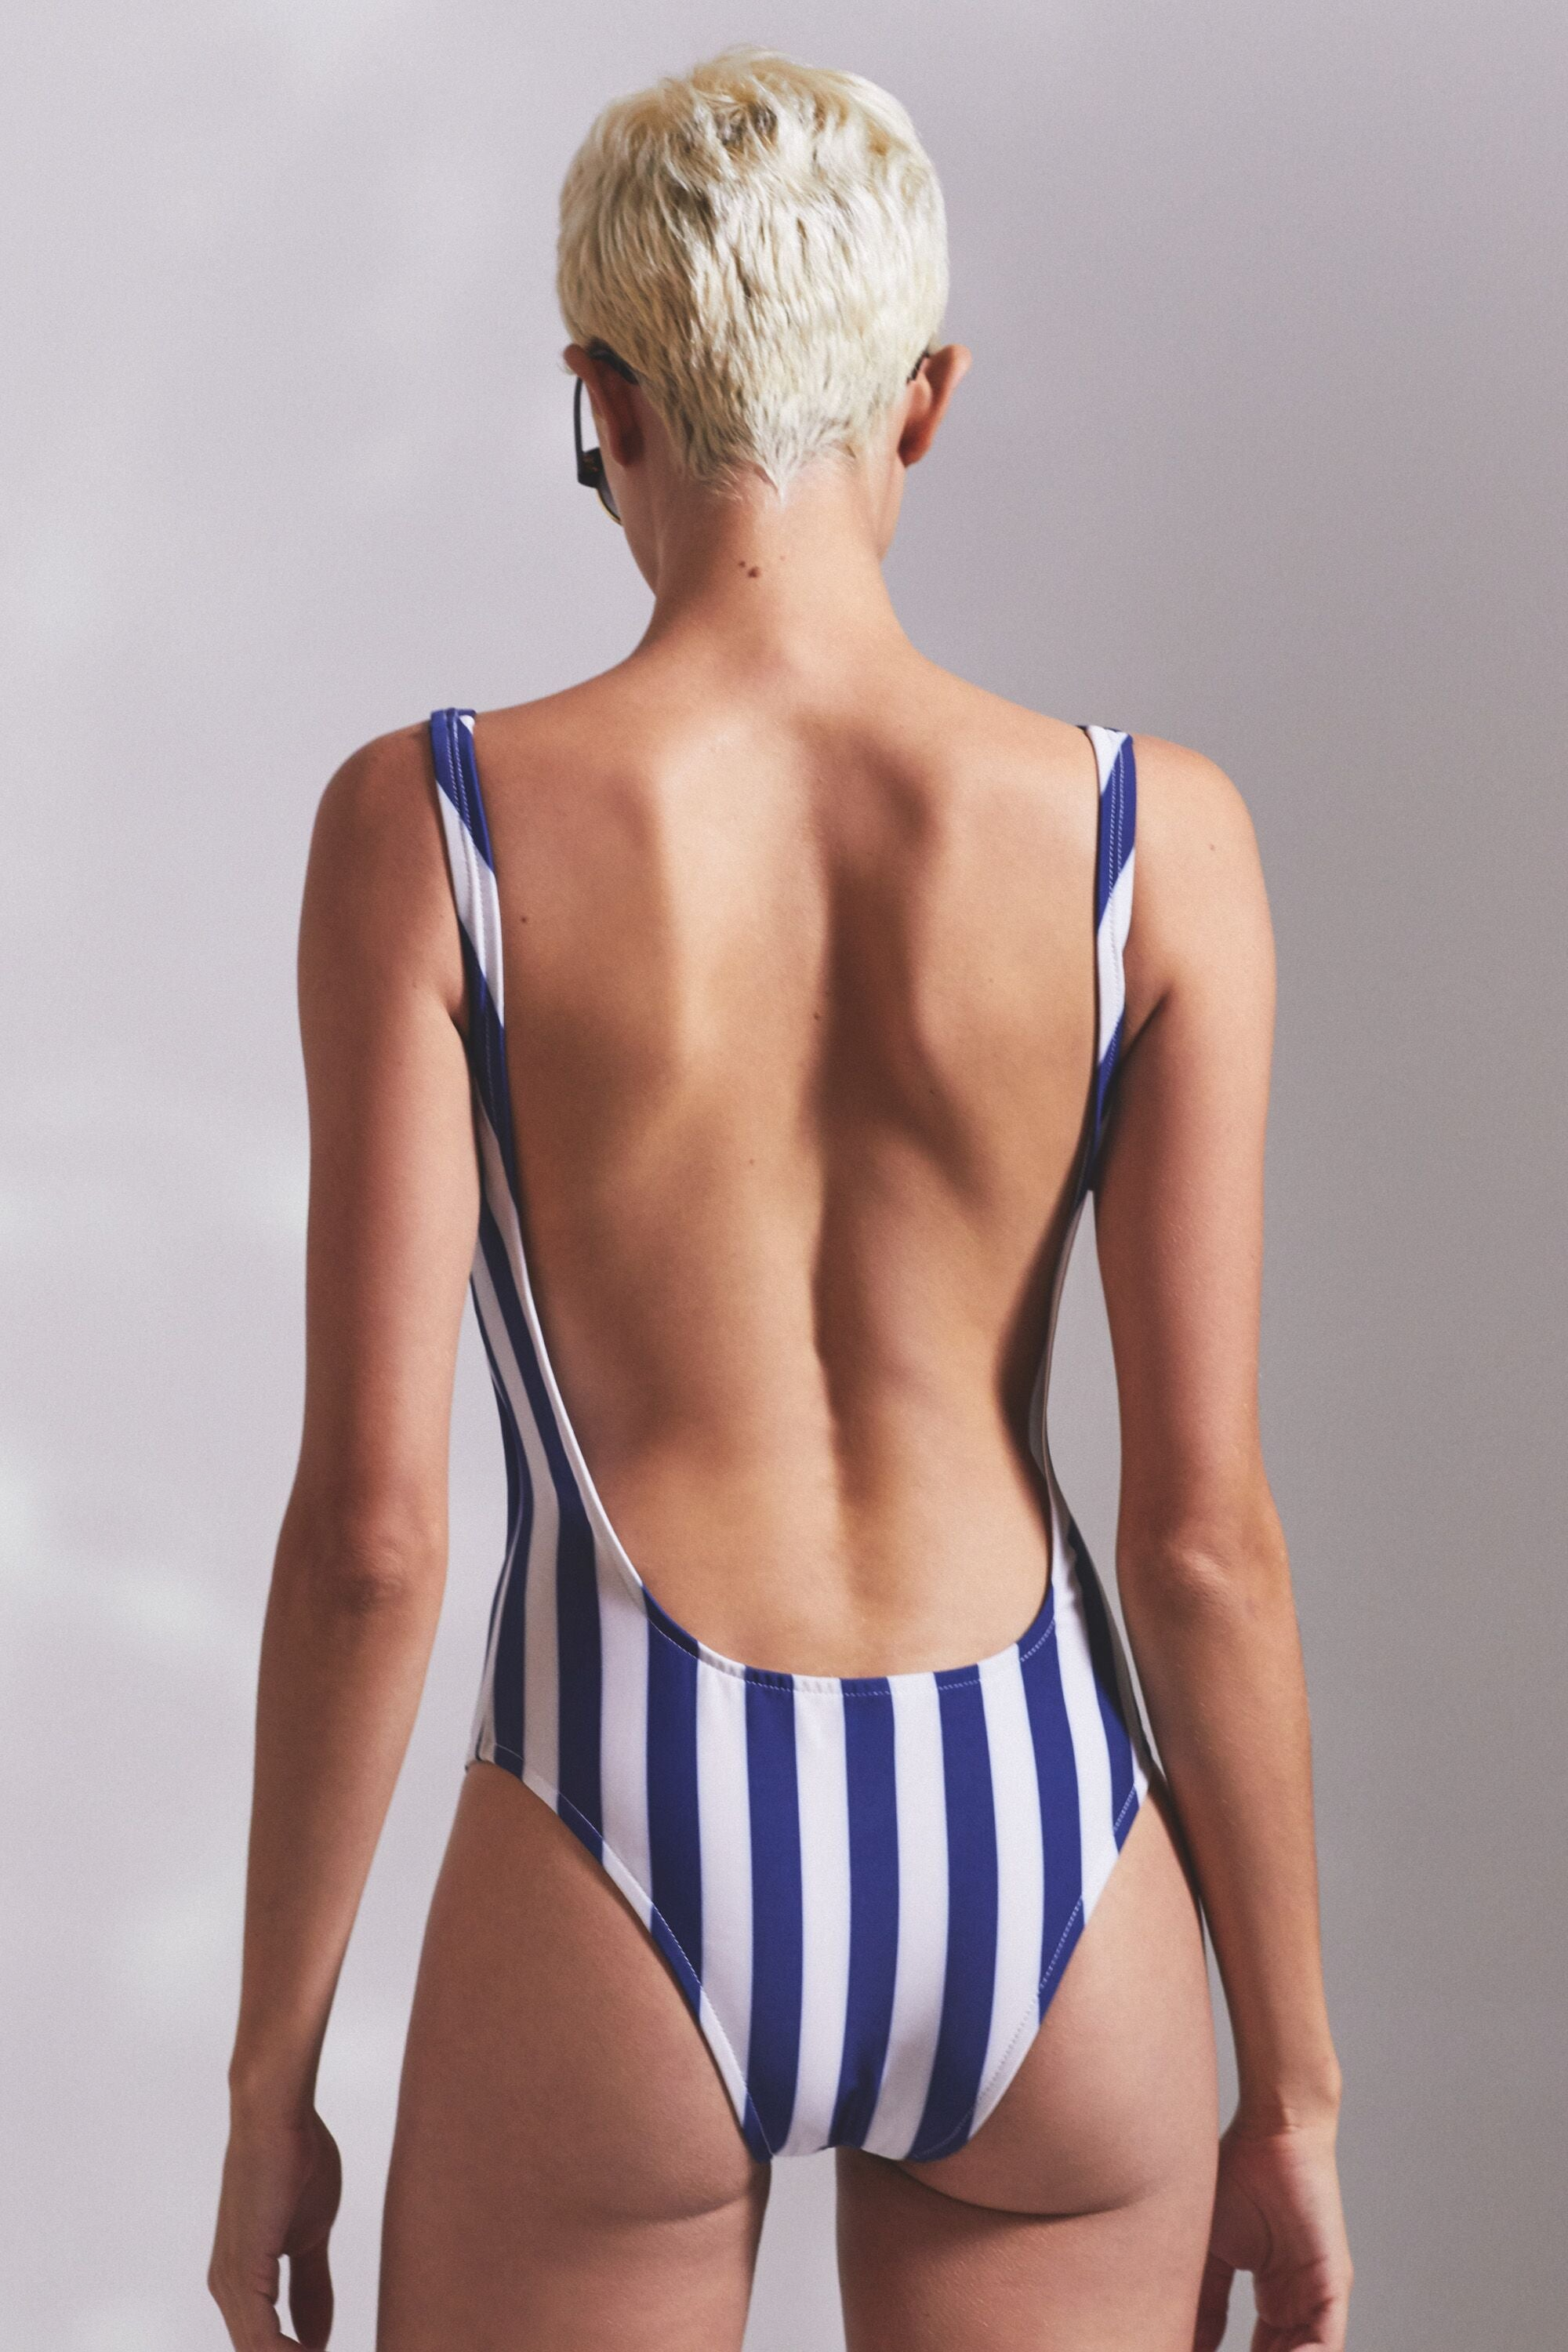 Women's Striped One Piece Swimsuit